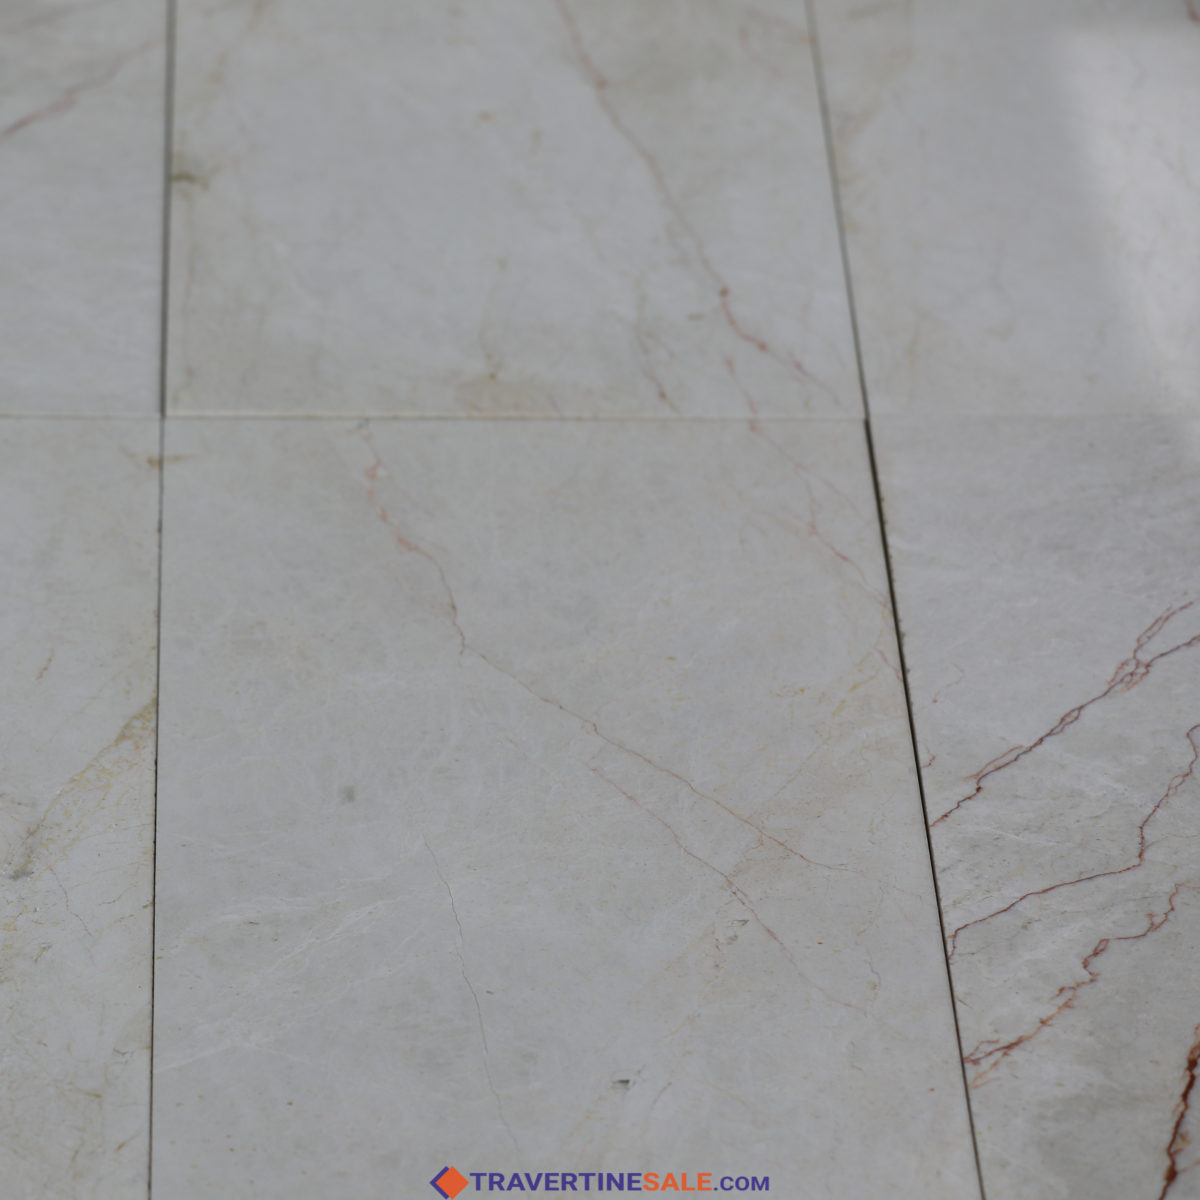 polished close up vanilla marble tiles with beige background and red veins